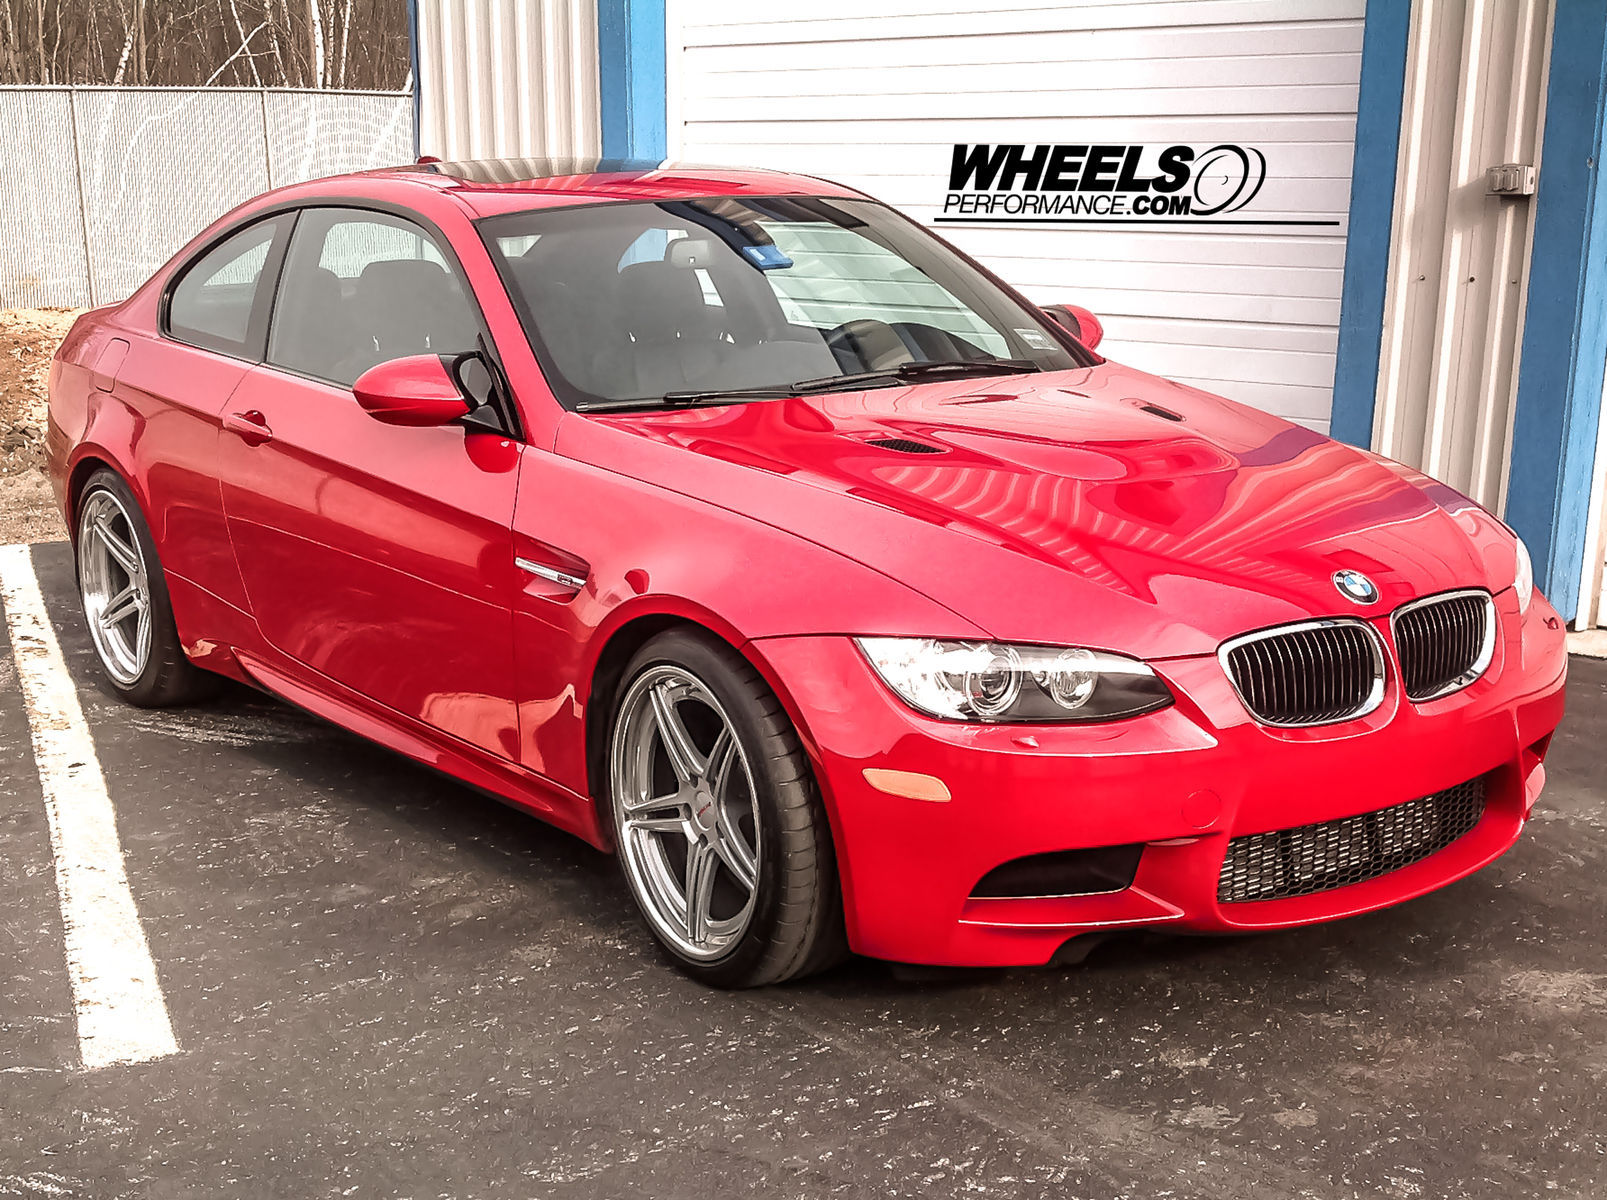 2010 BMW M3 | OUR CLIENT'S BMW M3 E92 WITH 19